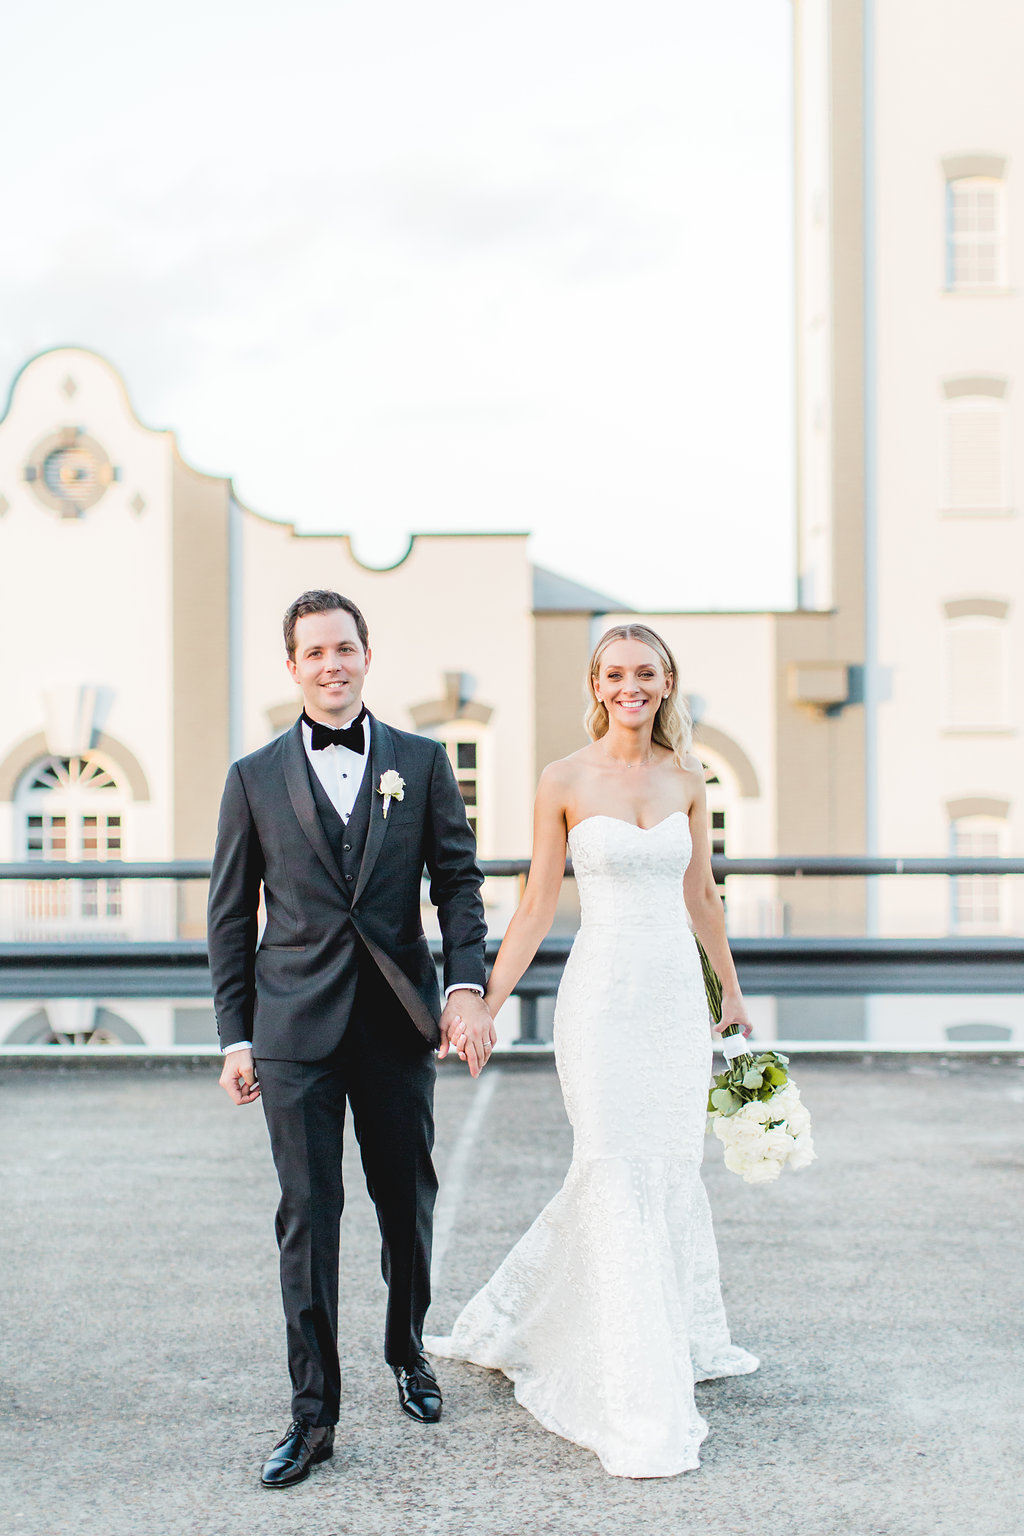 Jess and Drewy April 2018 - What can I say about Jess's Big Day? It was simply one of the most special weddings I have been blessed to create for.Jess had a plan and I was the only person who could help her with it. Take a look at the images and see if you can figure out what it was...images by Roost Film Co.